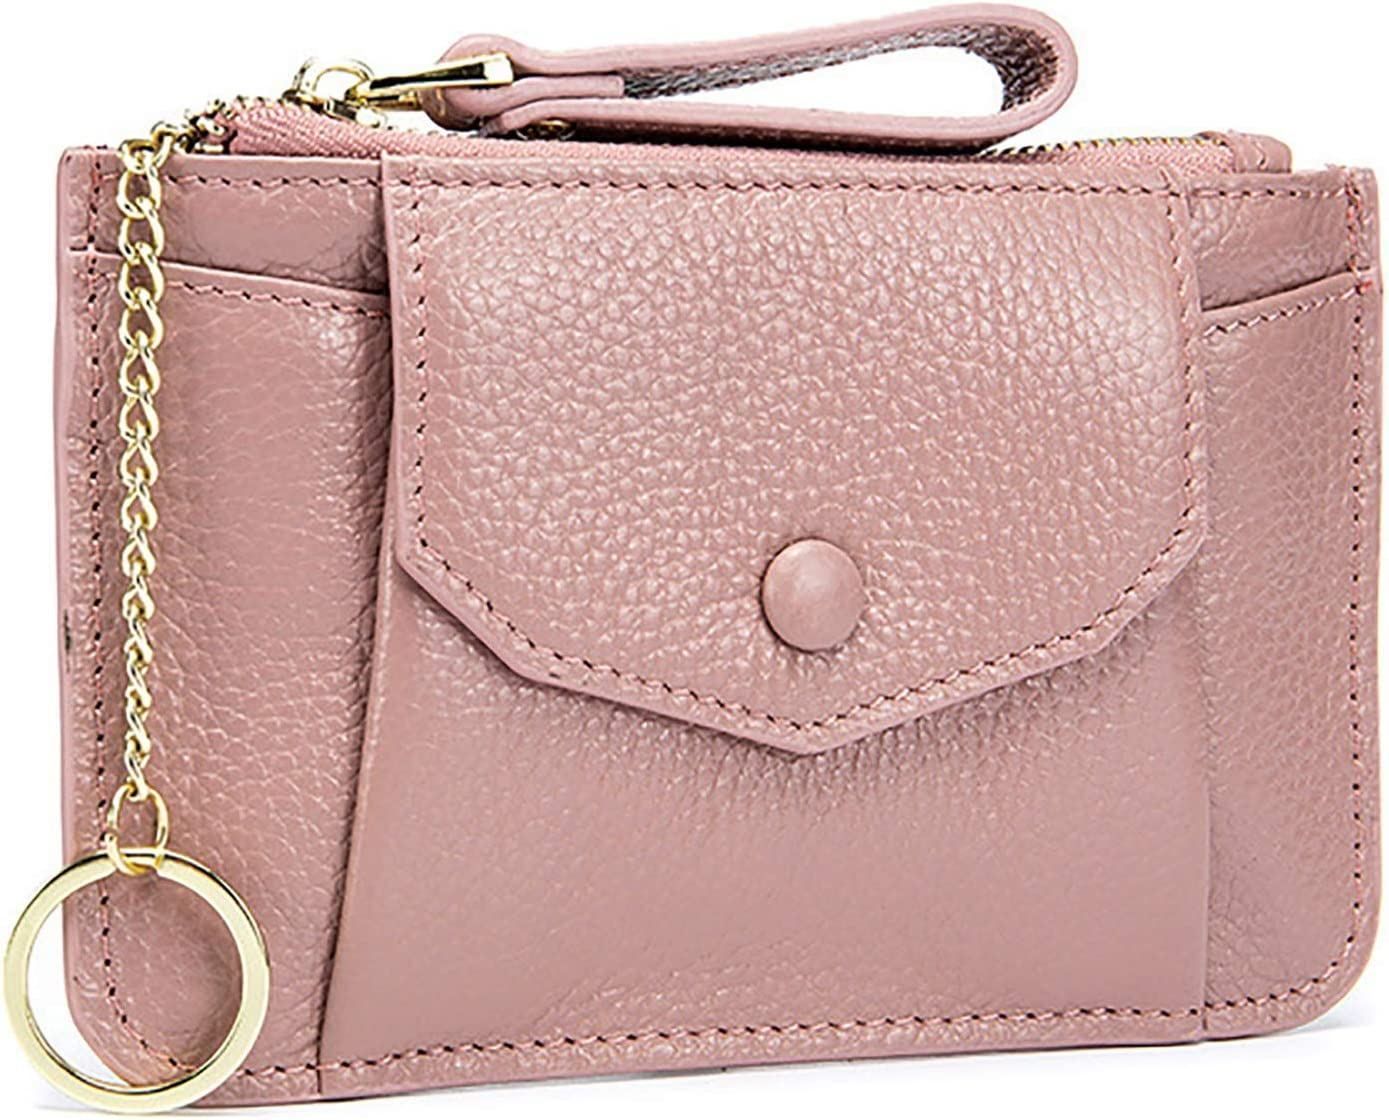 HttKse Coin Purses Wallets Coin Purse Women Leather Change Wallet Coin Pouch Key Bag Small Pocket Wallets with Key Chain Money Clips Coin Pouches (Color : Pink, Size : 15x9.5x1cm)